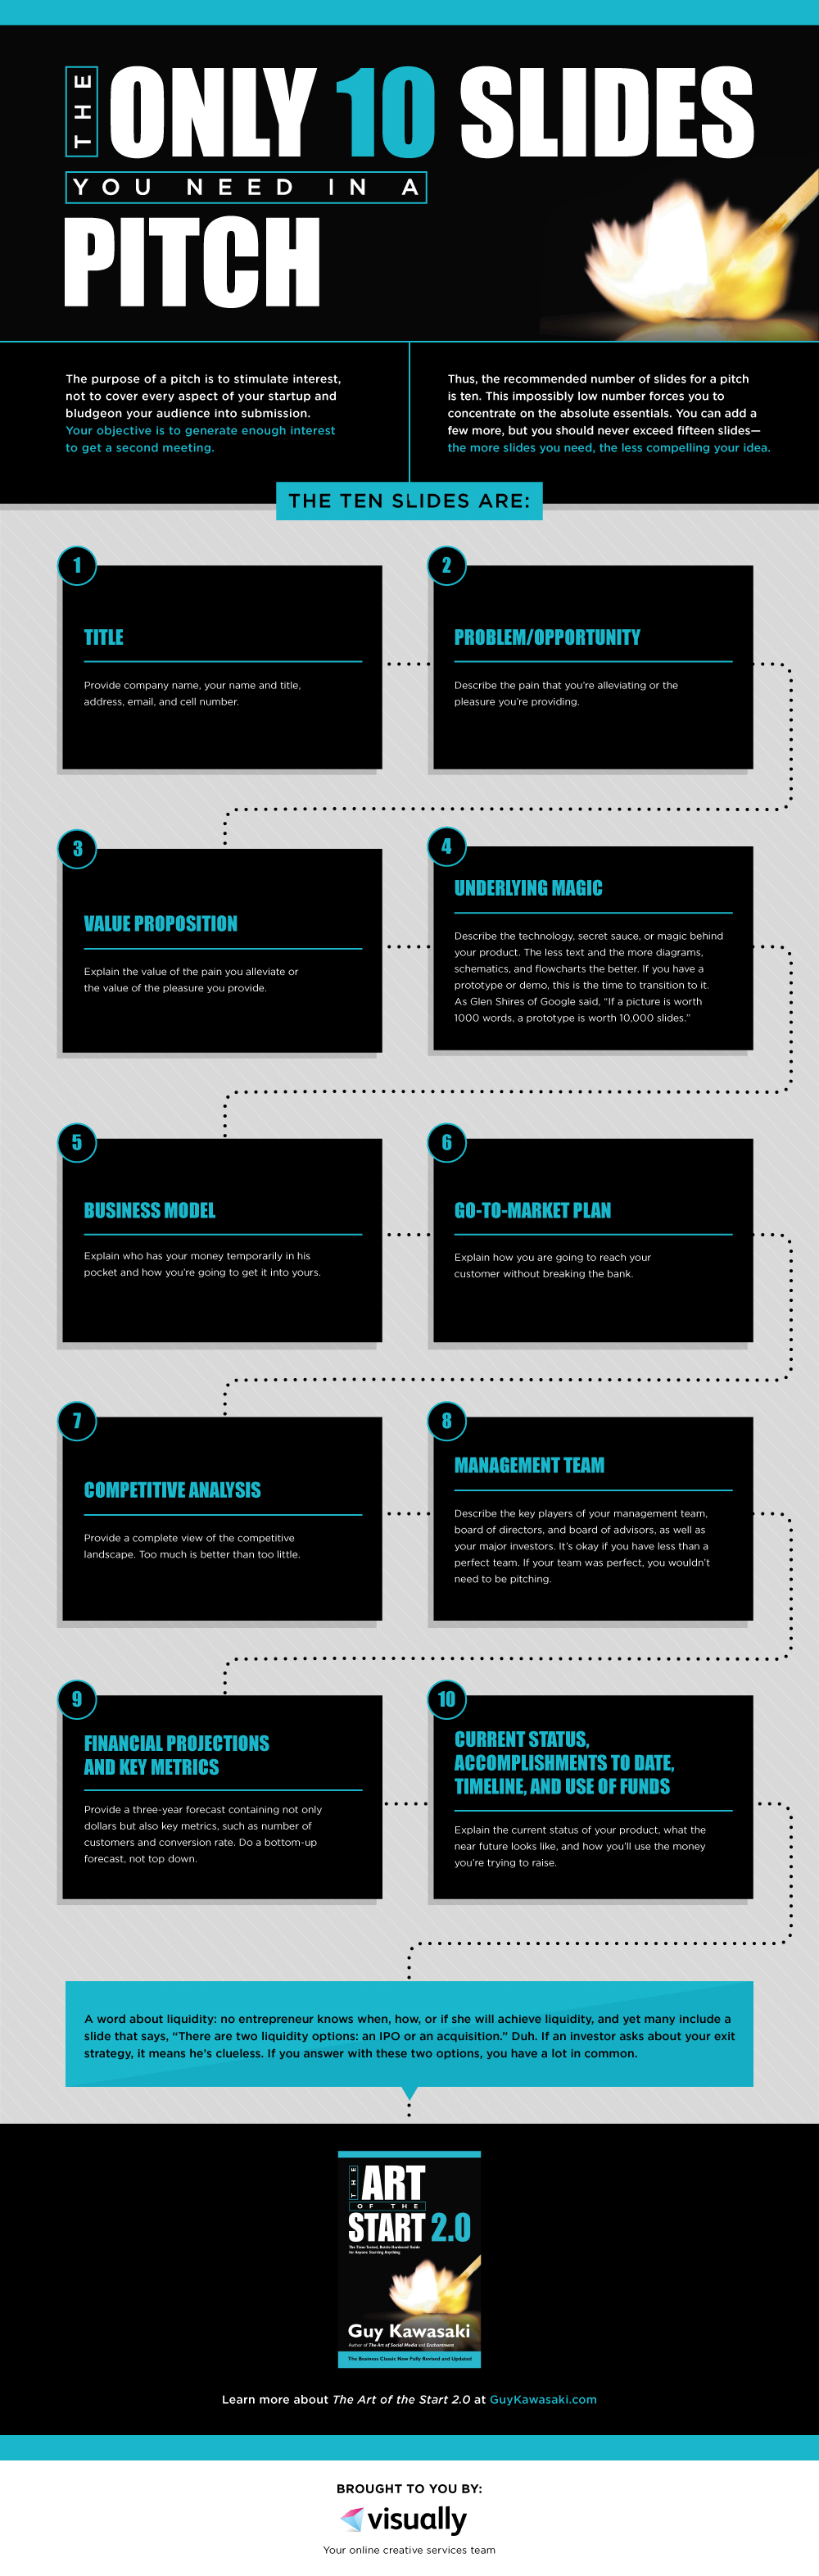 The Only 10 Slides You Need in Your Pitch: A Review